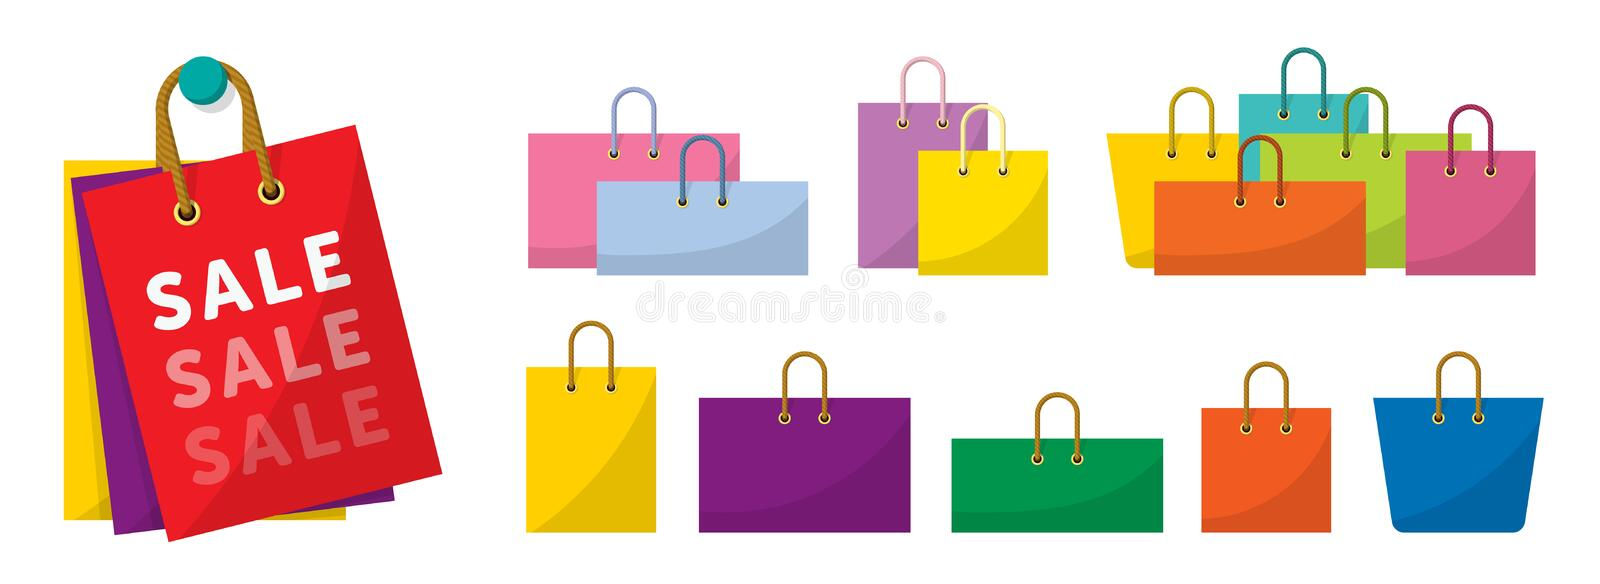 Colorful shopping bags vector, sale bag royalty free stock image